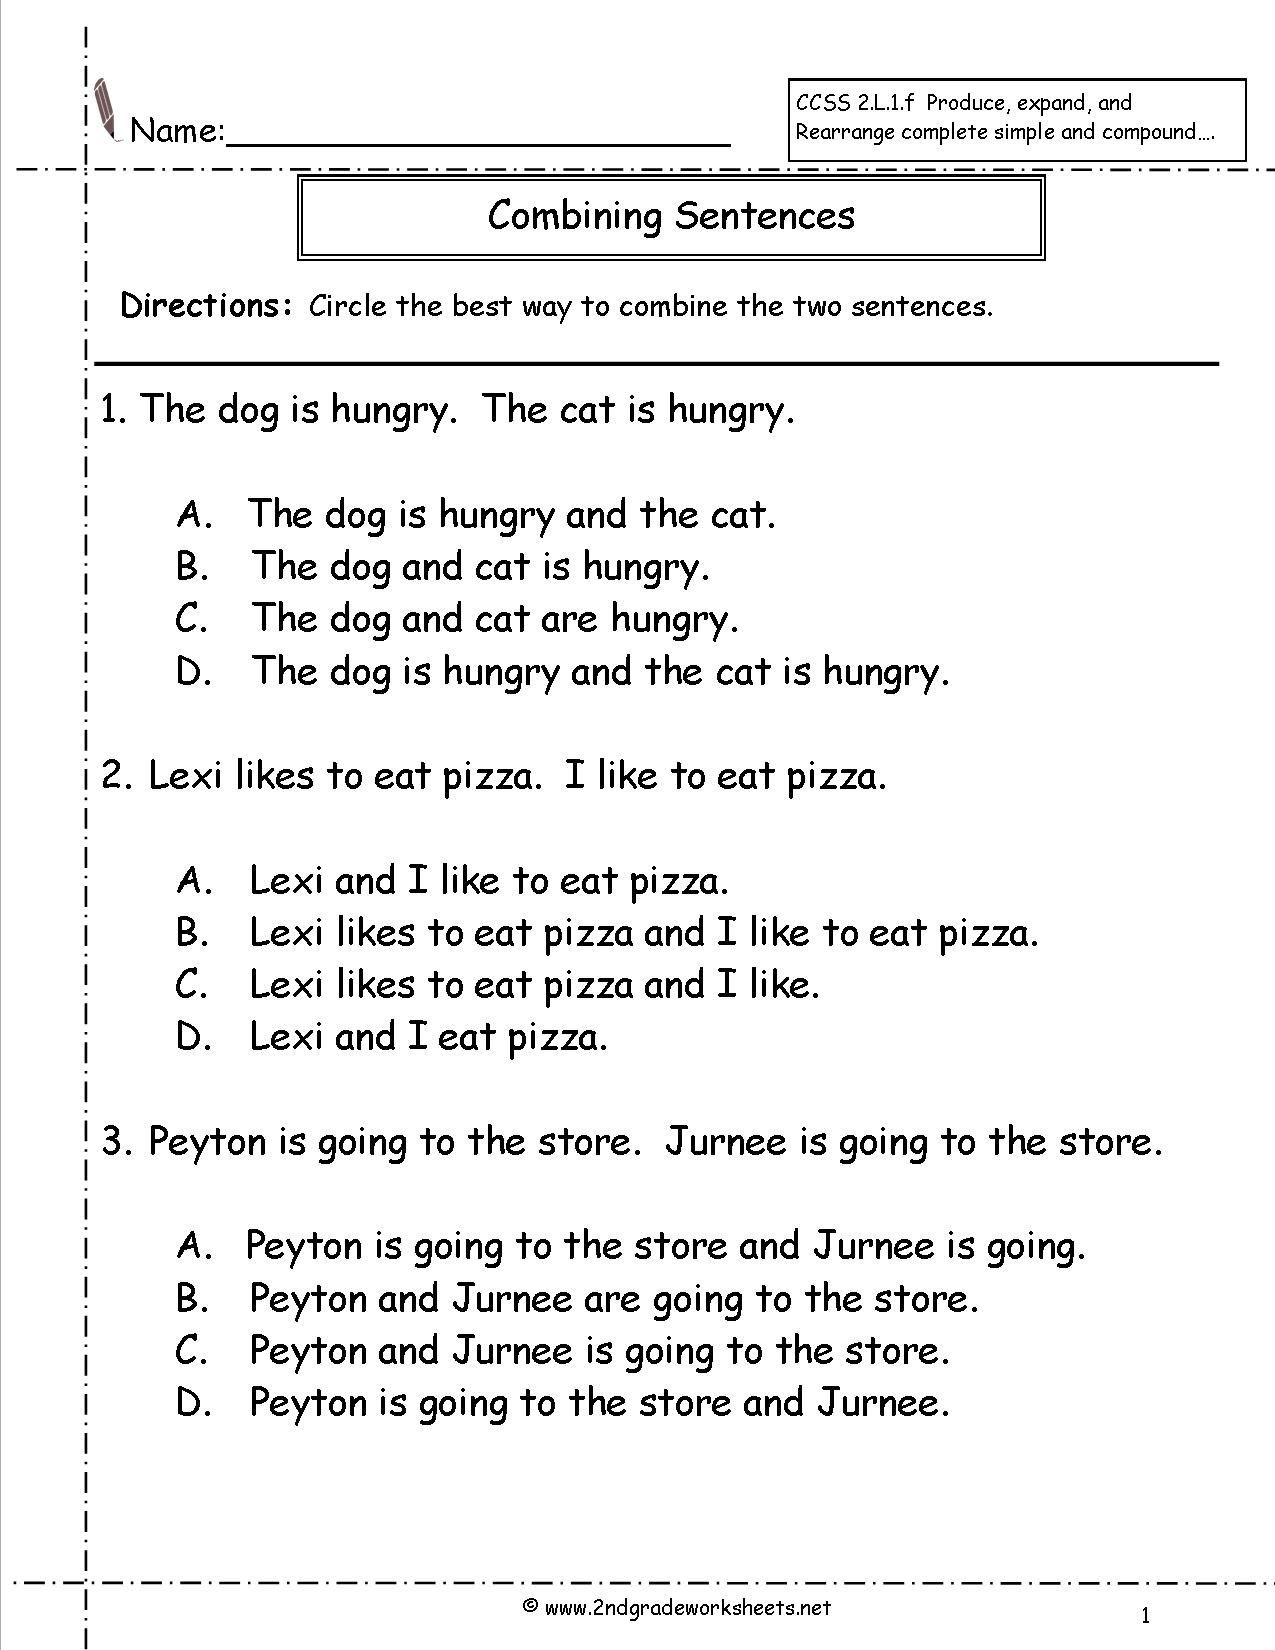 Topic Sentence Worksheets 3rd Grade Bining Sentences Worksheet with Images